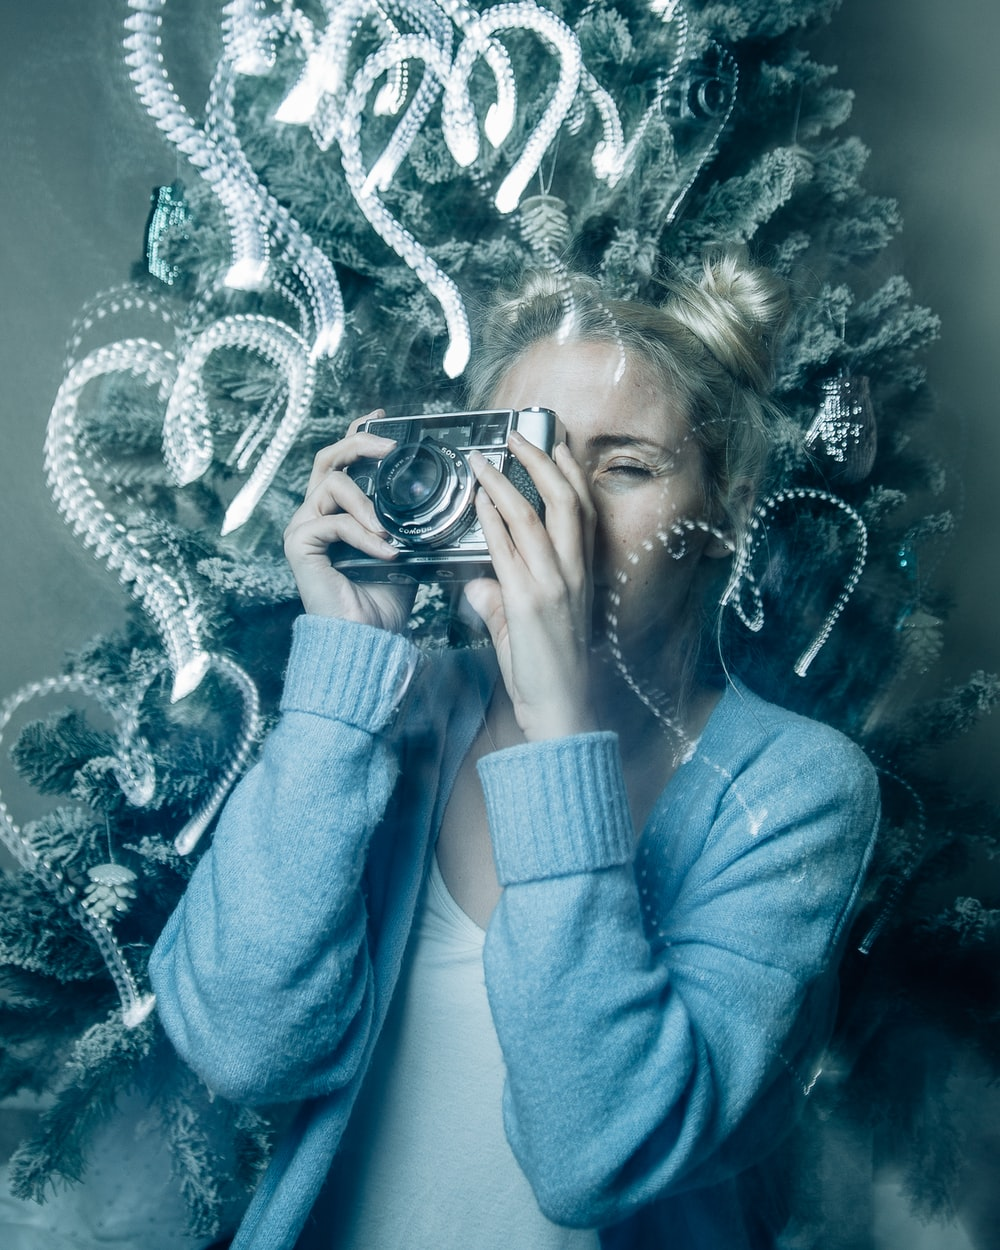 woman in blue sweater holding black camera